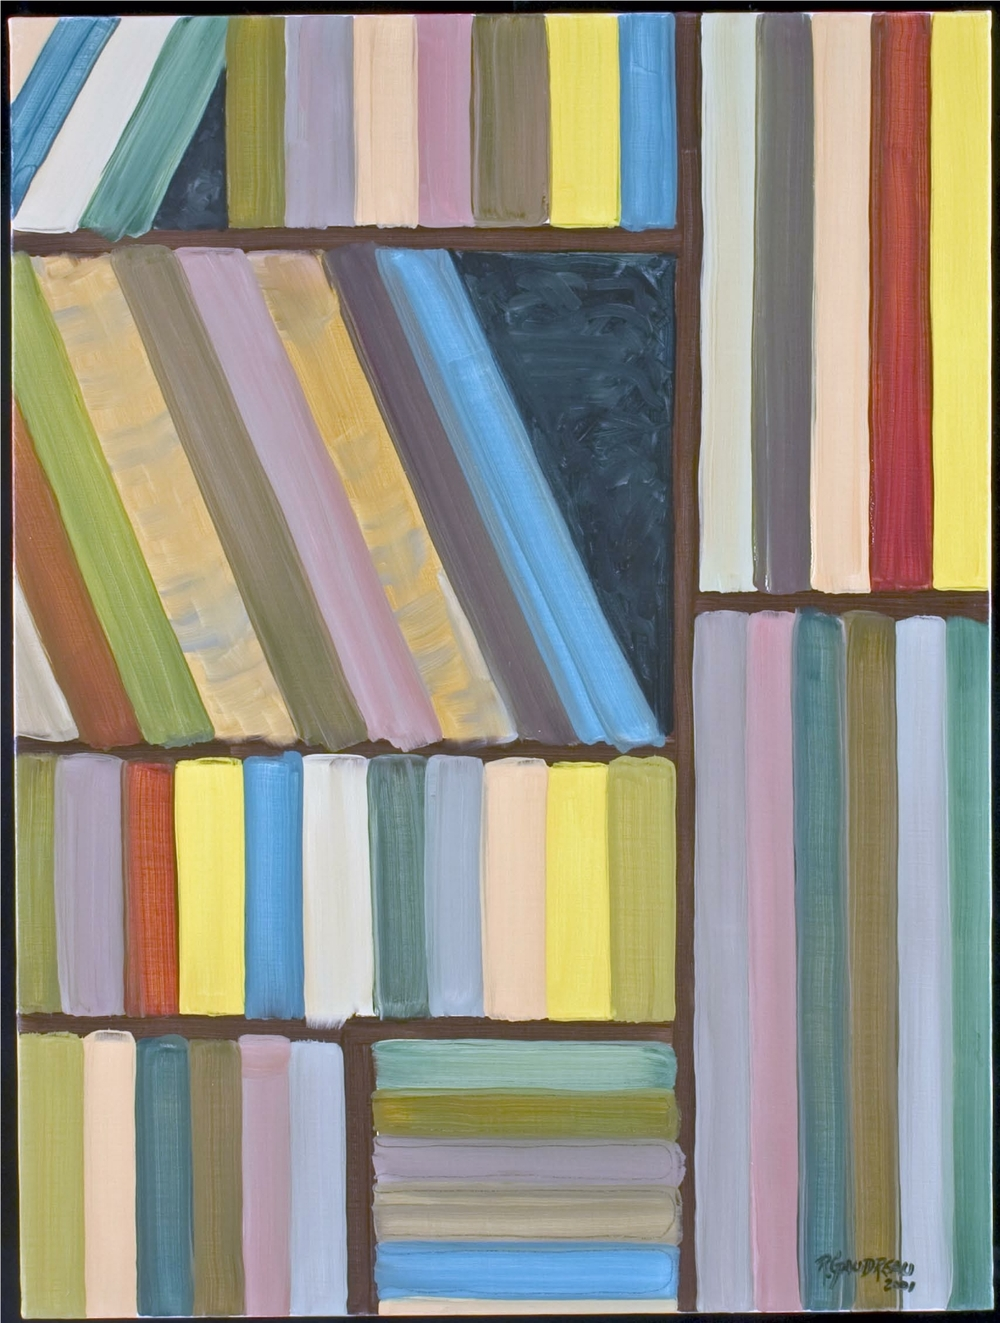 54 Books 2001     (SOLD) oil on canvas 36 x 24 inches